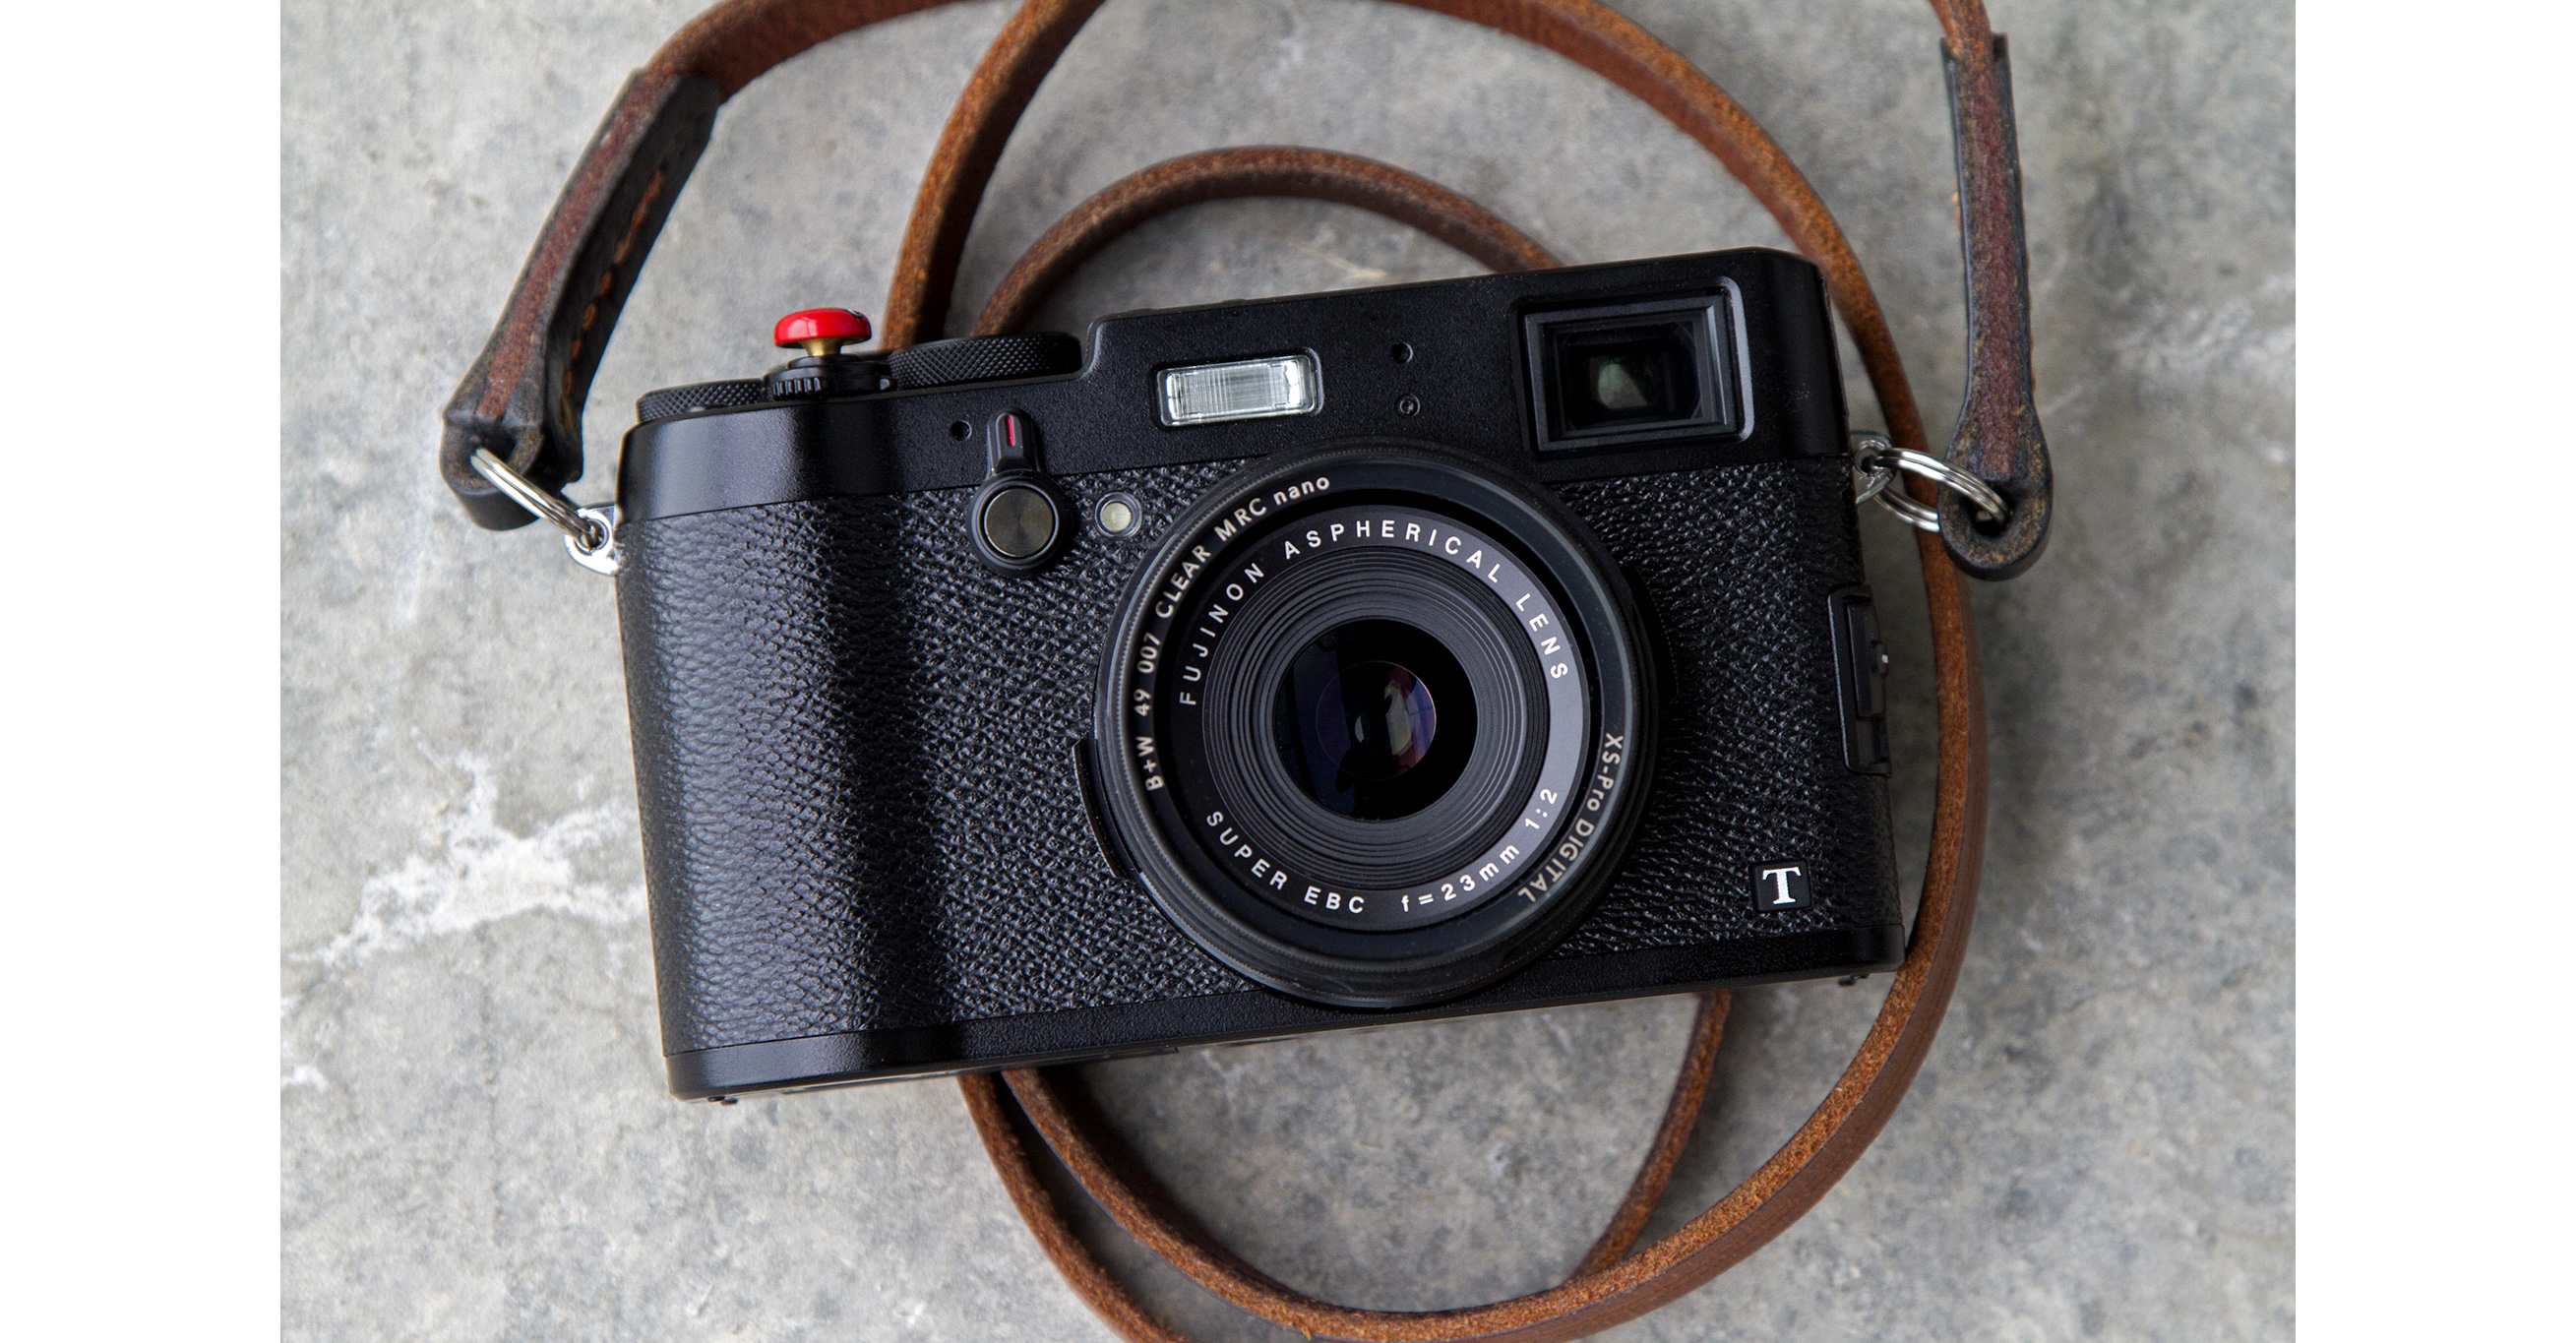 I Sold My Leica And Got A Fuji X100T For Street Photography